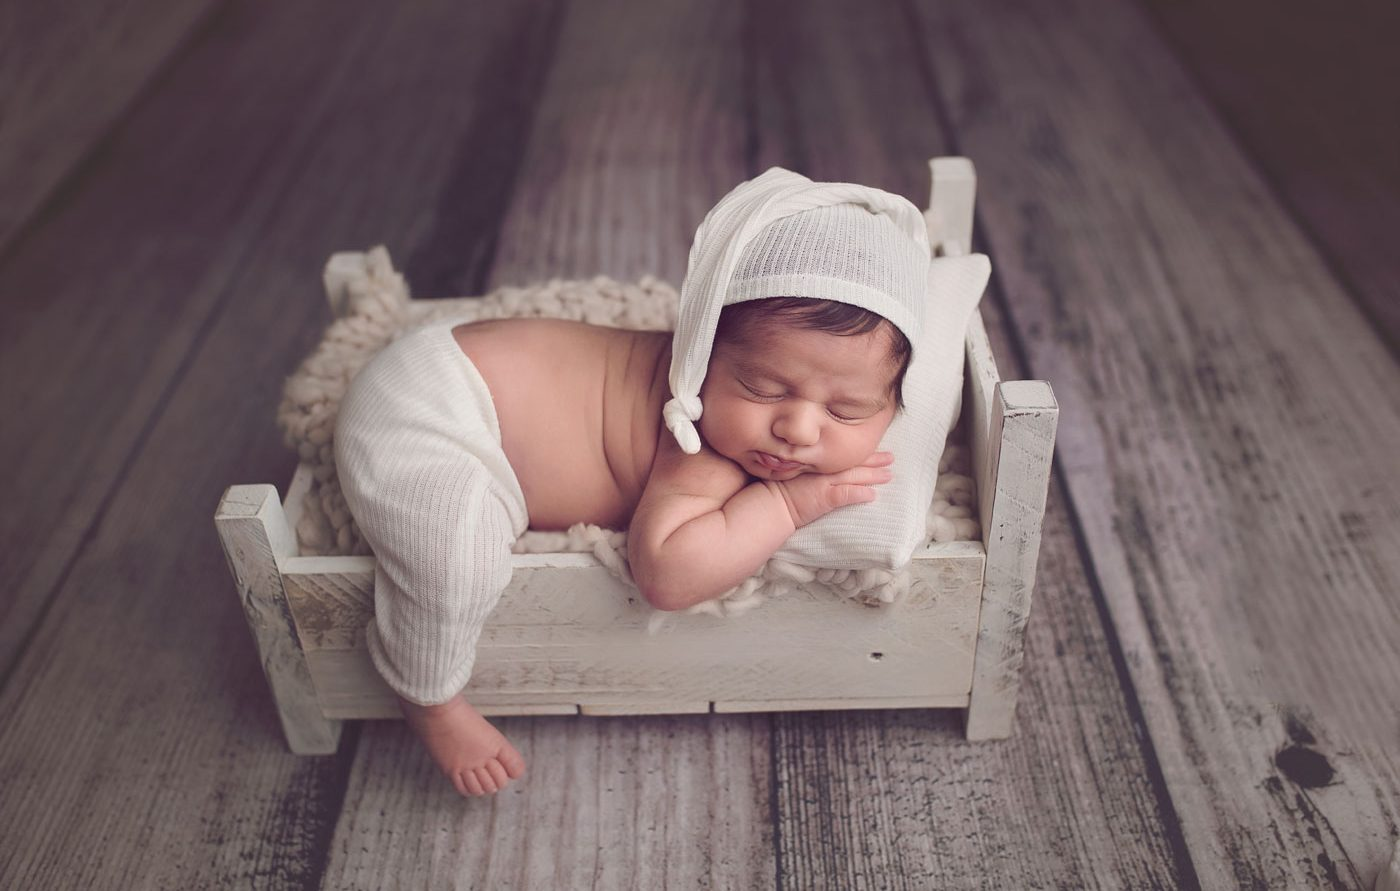 As a rule creative newborn photography props prove that you are a professional who knows how to achieve great results but which photography props to